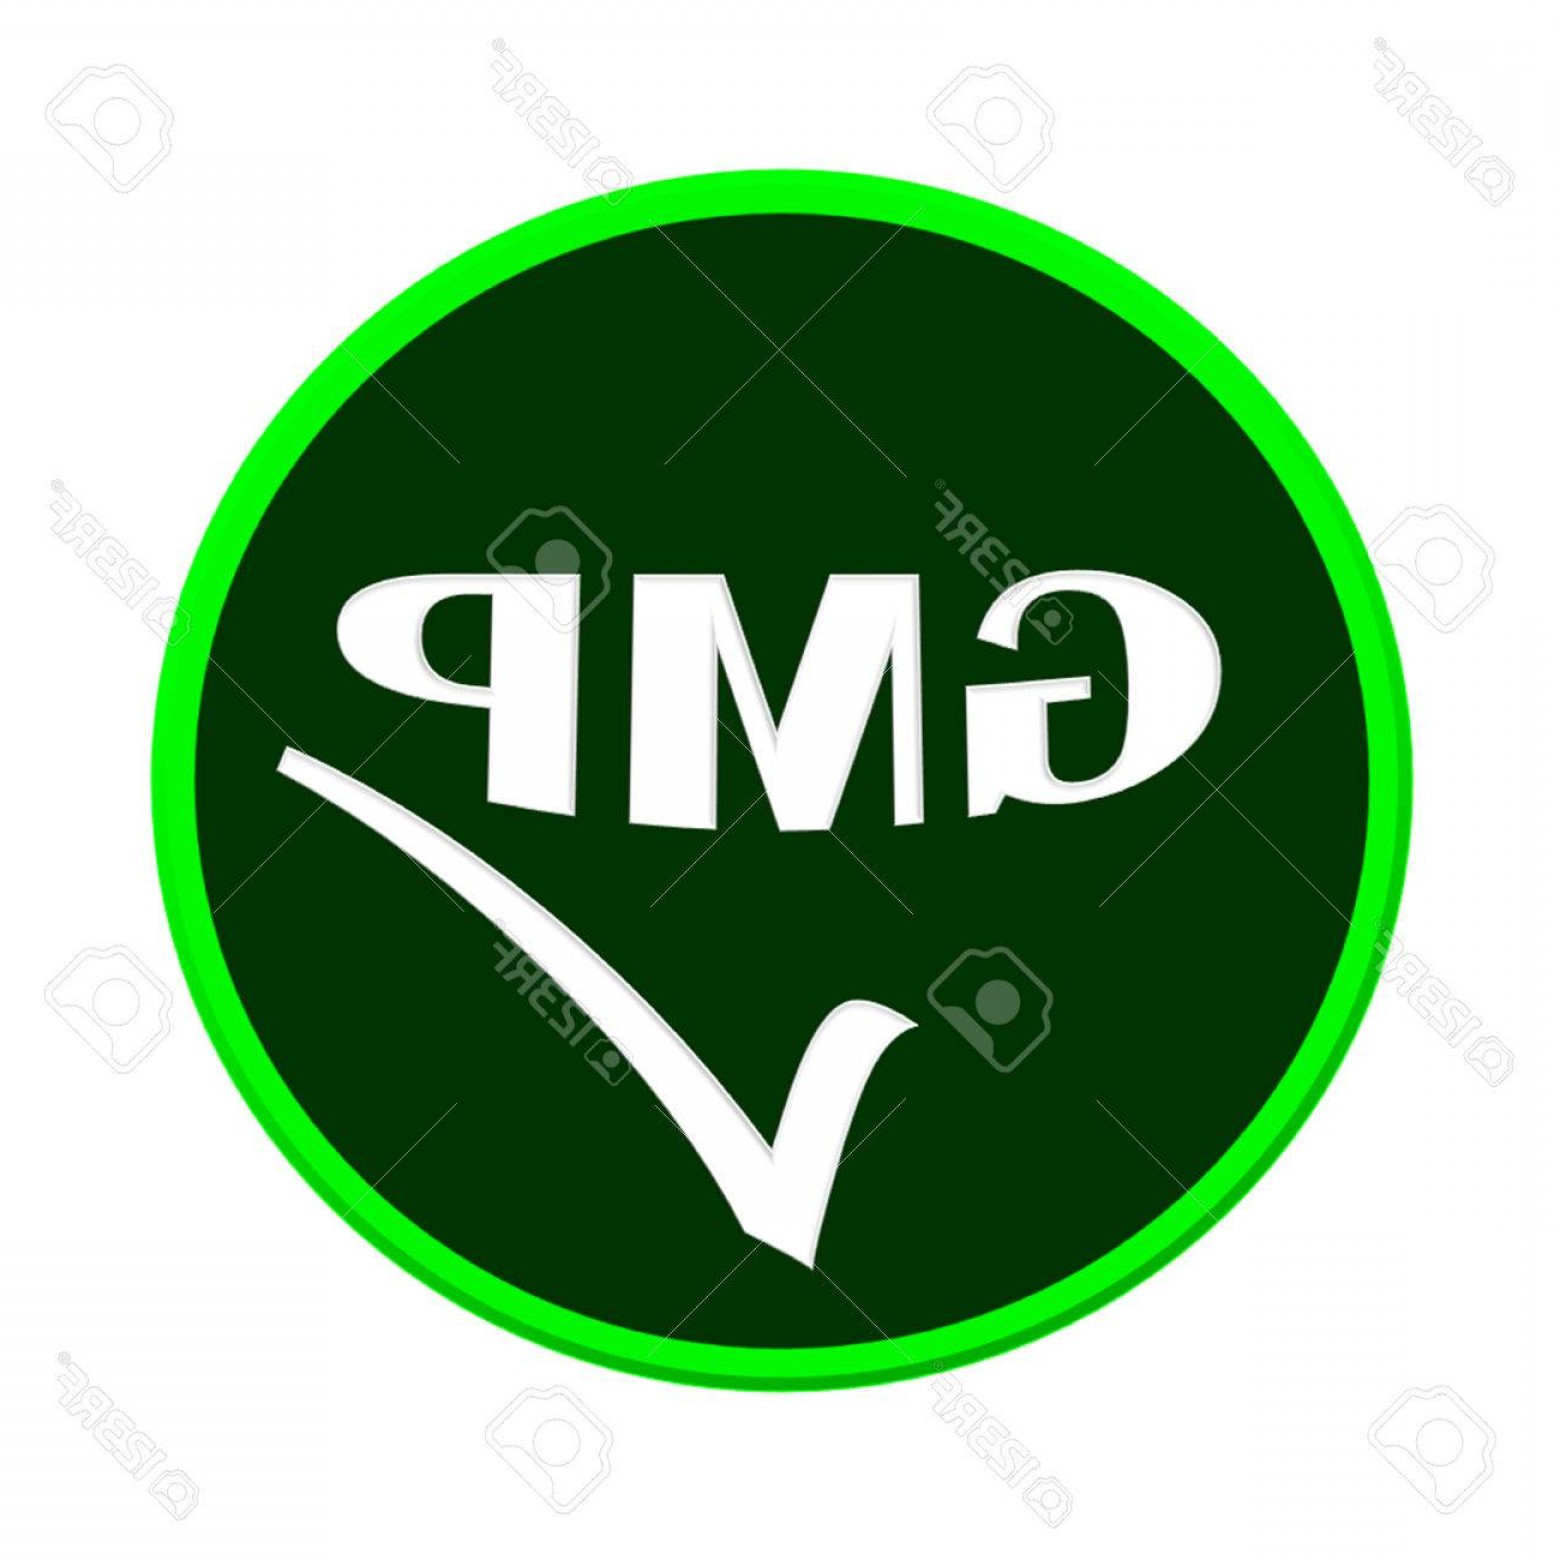 GMP Logo Vector: Photogmp Logo Or Symbol Image Concept Design On White Background